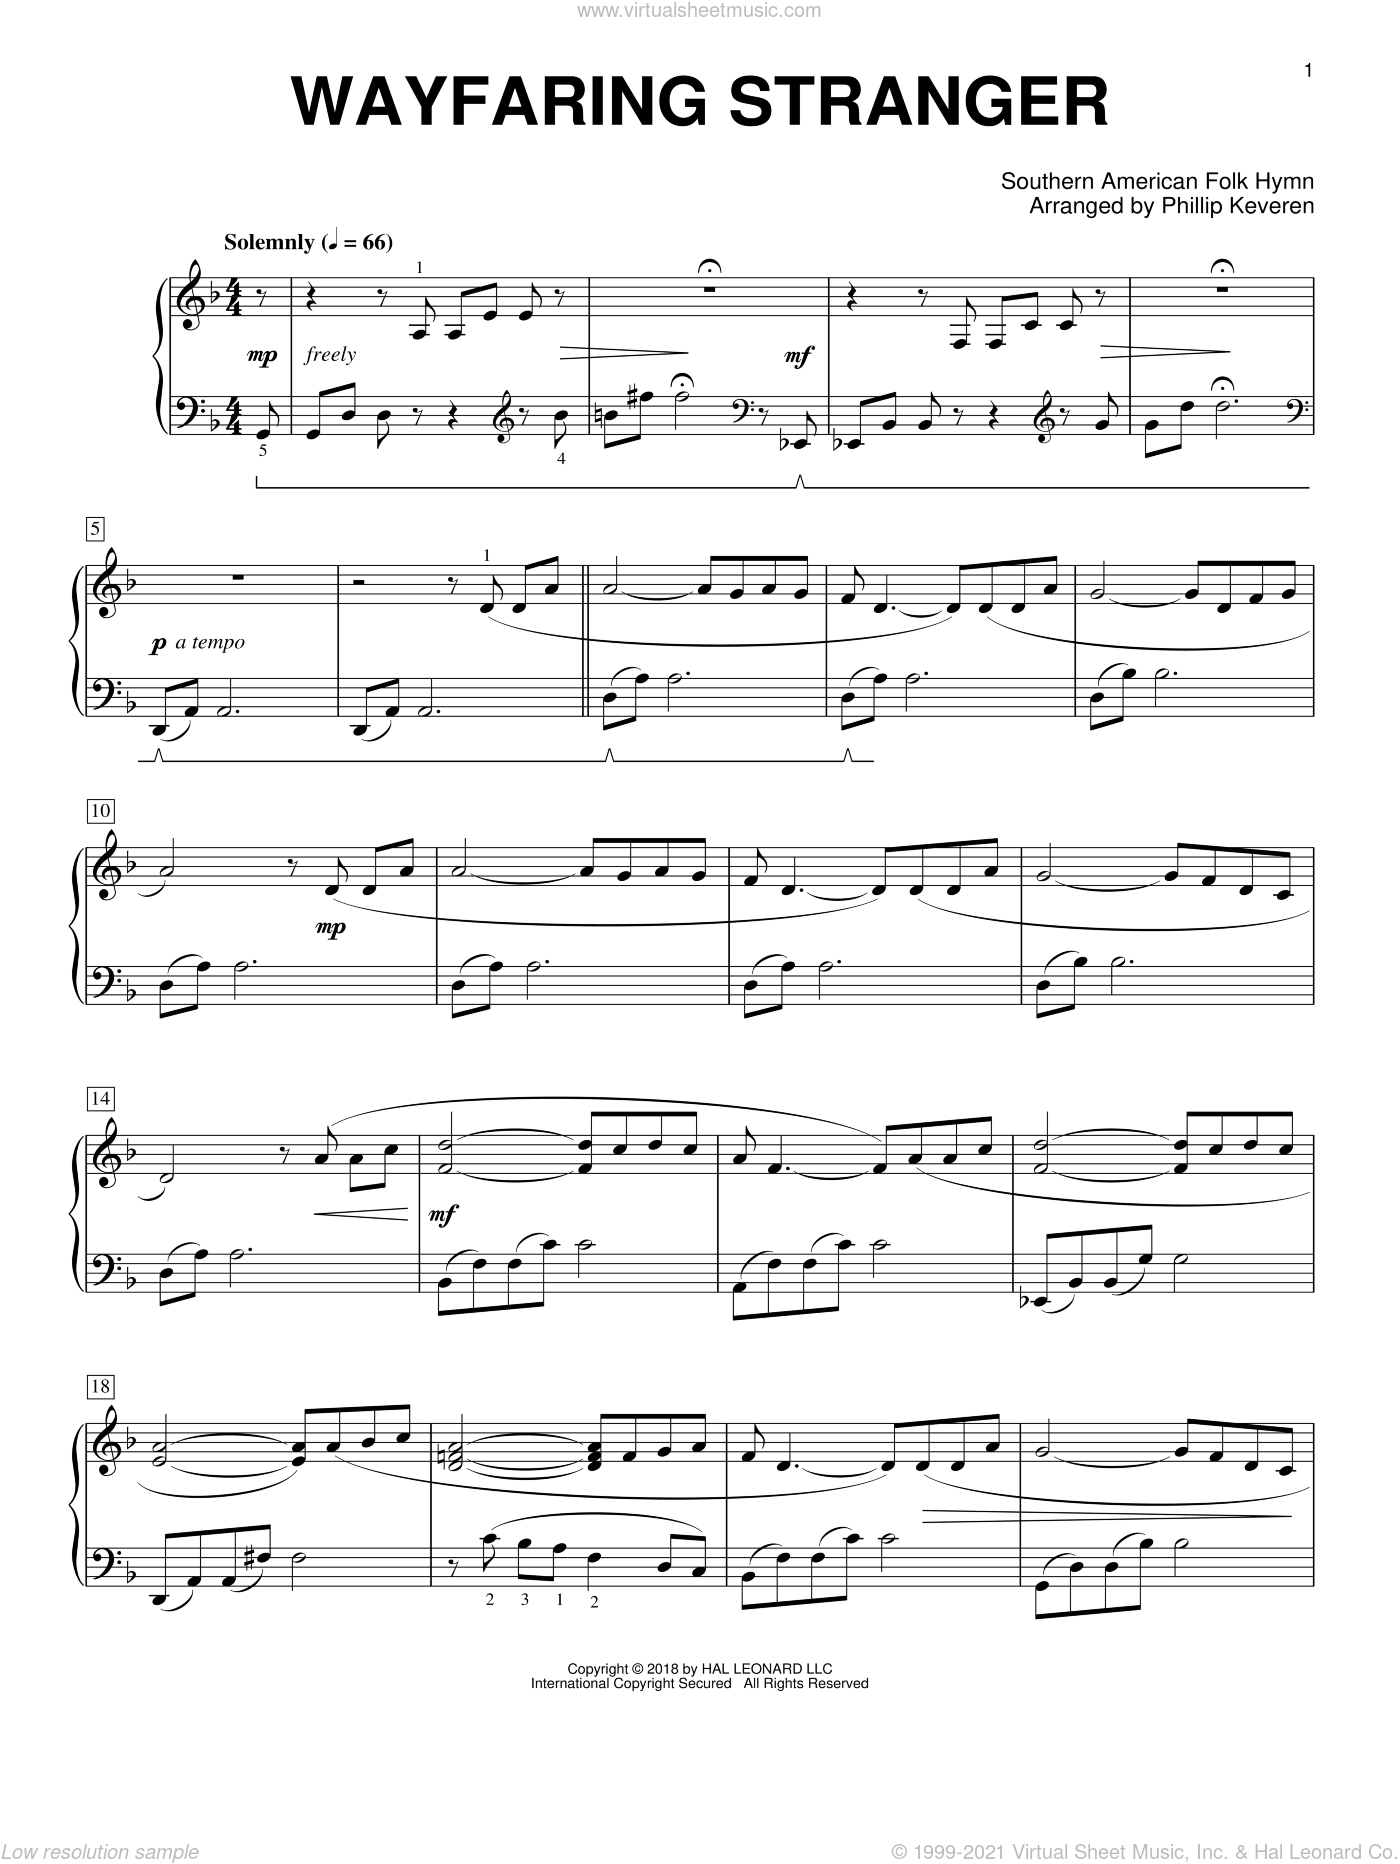 Wayfaring Stranger [Classical version] (arr. Phillip Keveren) sheet music for piano solo by Phillip Keveren and Miscellaneous, intermediate skill level